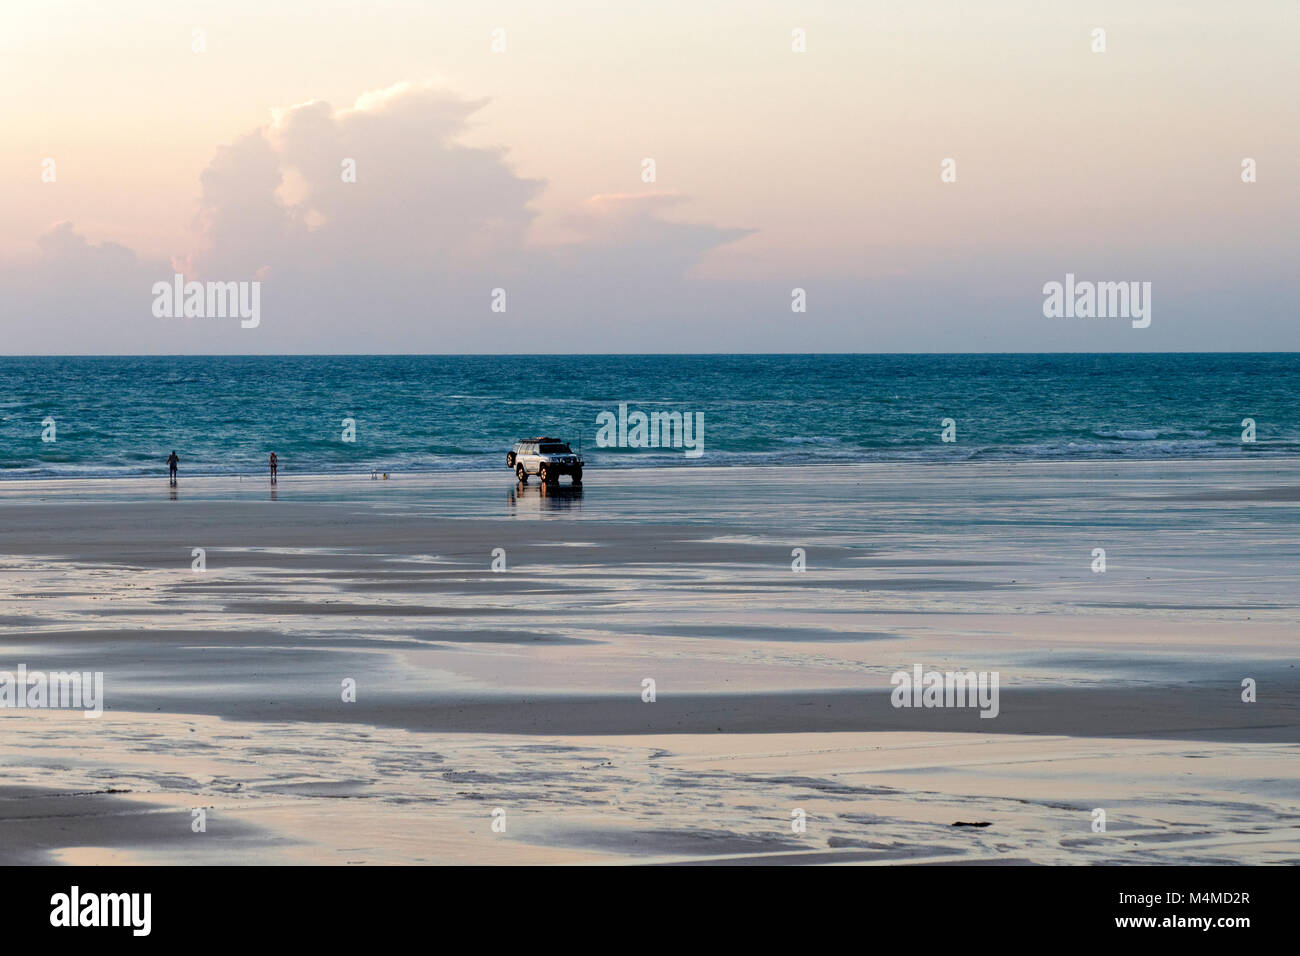 4WD car parked on beach, Cable Beach, Broome, West Kimberley, Western Australia - Stock Image